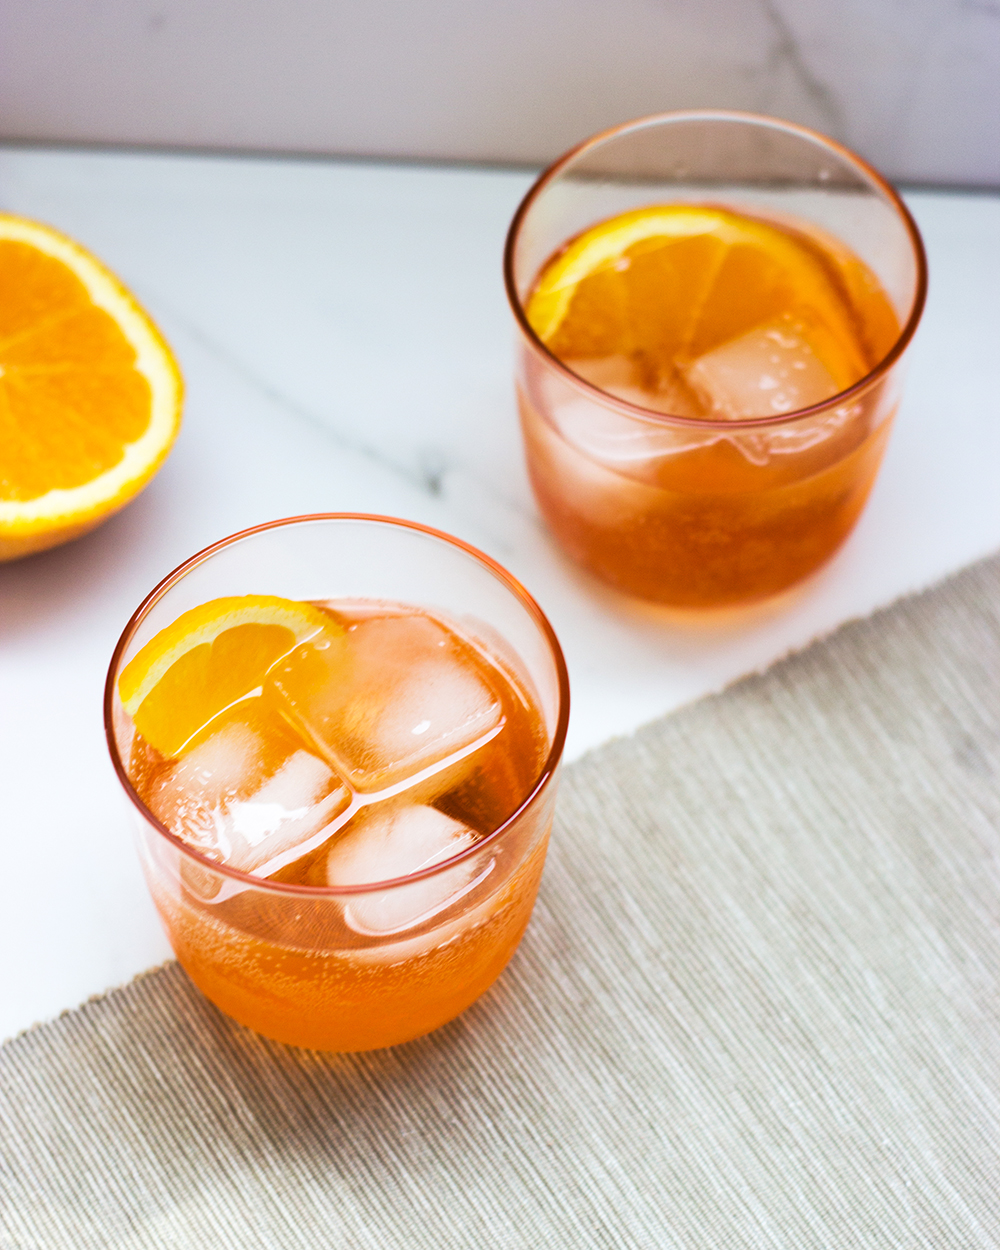 livvyland-blog-aperol-spritz-summer-cocktail-recipe-austin-texas-lifestyle-blogger-2